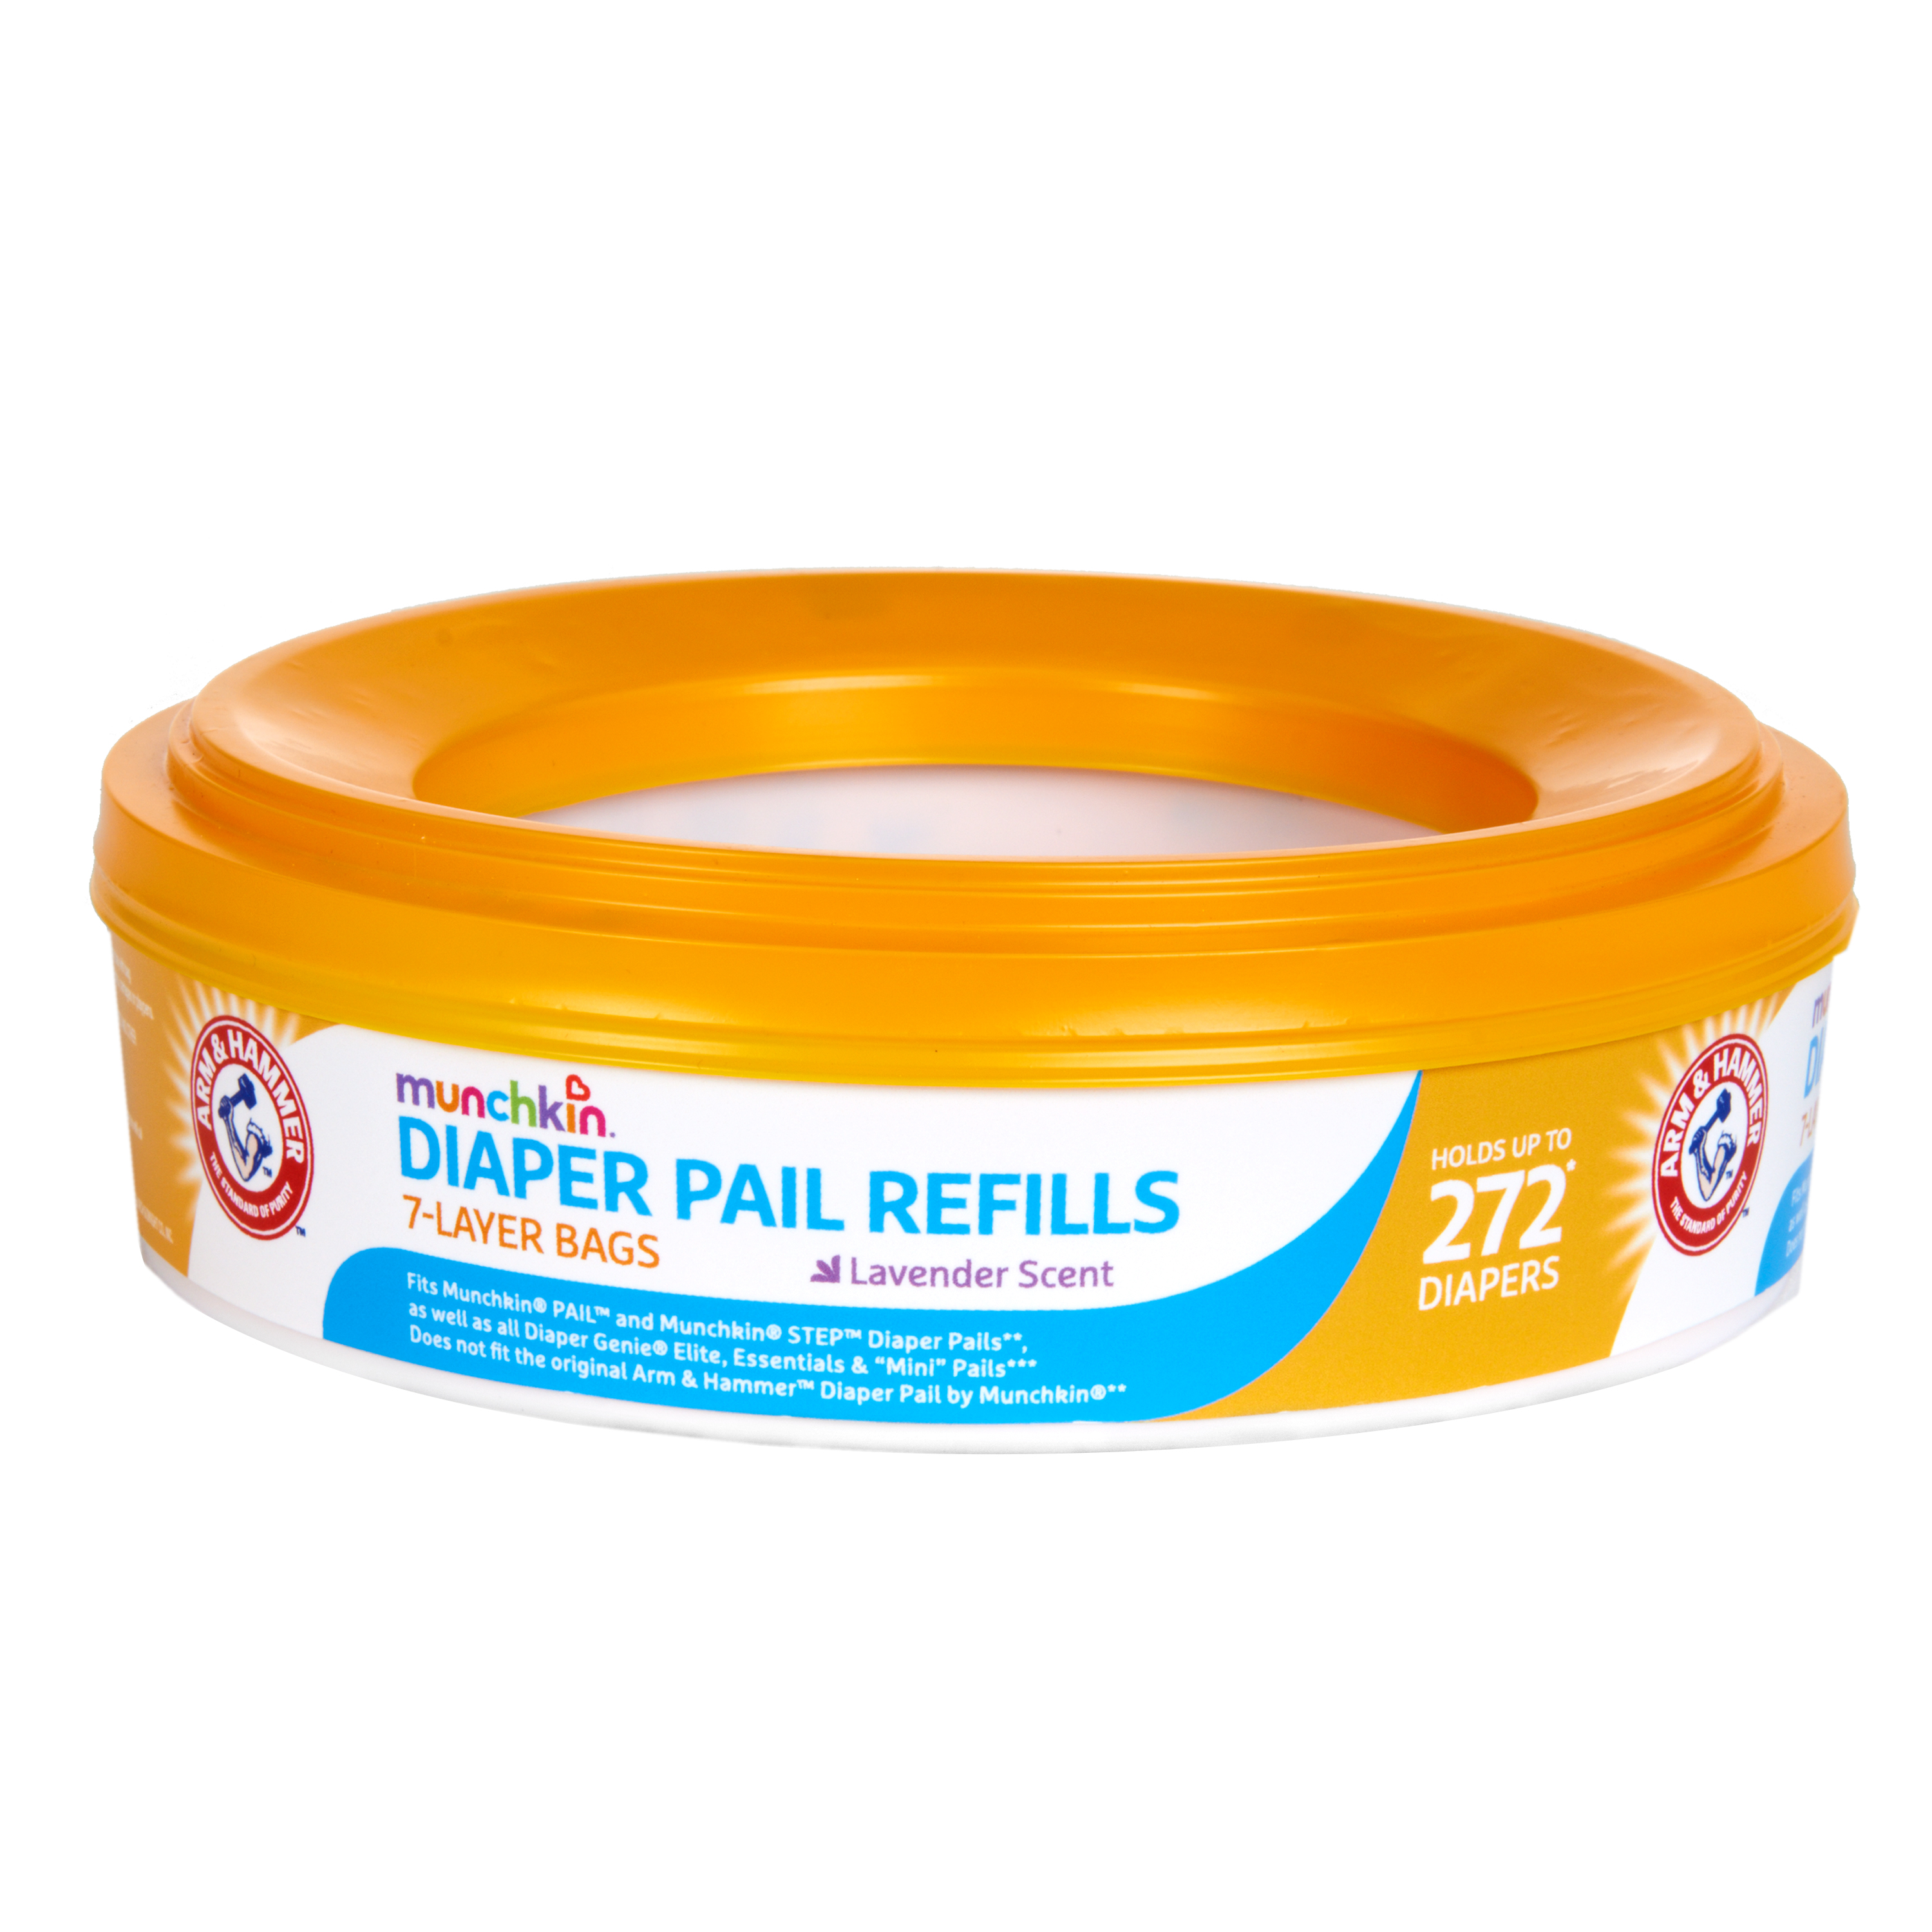 Munchkin Arm and Hammer Diaper Pail Refill Rings, 272 Count, 1 Pack